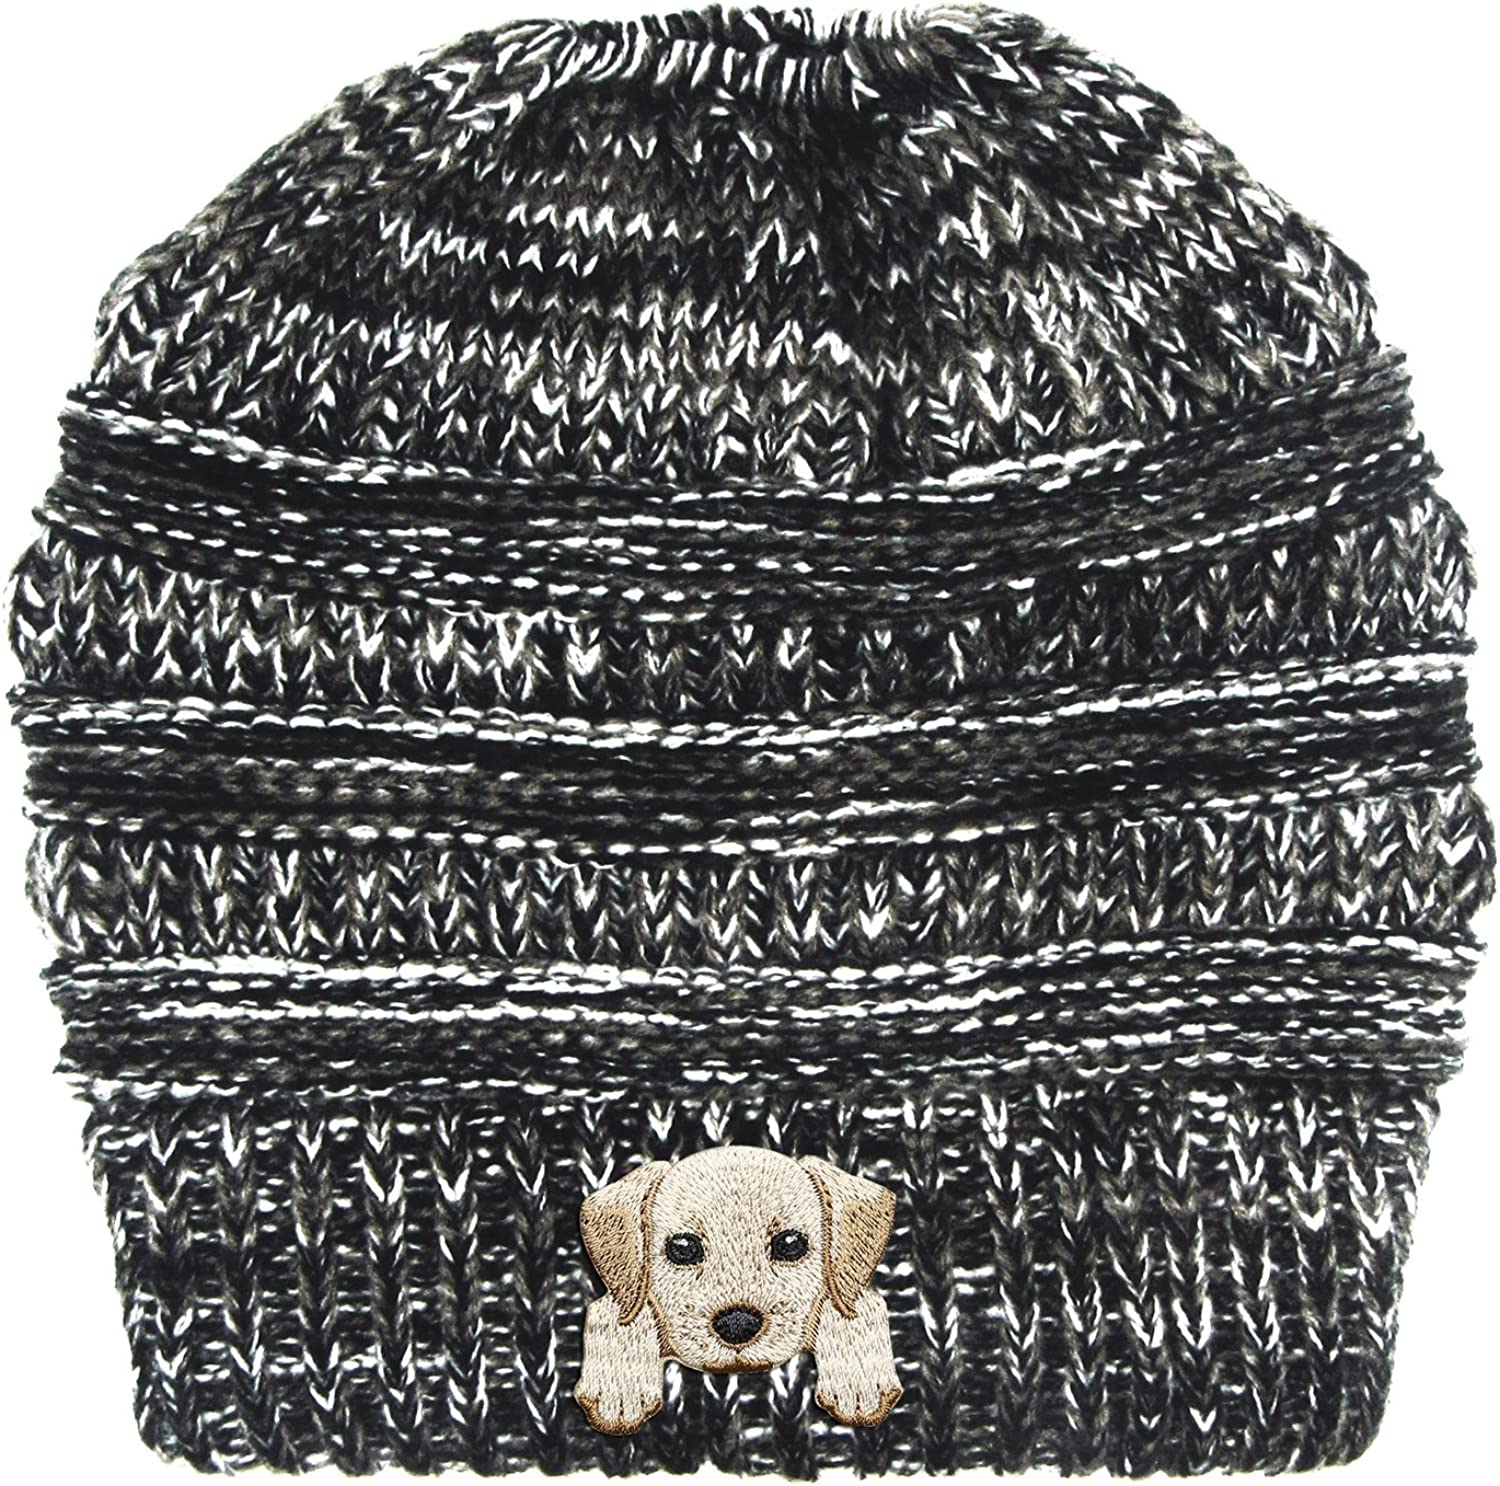 Lhotse Labrador Retriever Embroidered Puppy Dog Series Beanie  Stretch Fleece Cable Knit High Bun Ponytail Skullies Hat Cap  Black White Mix